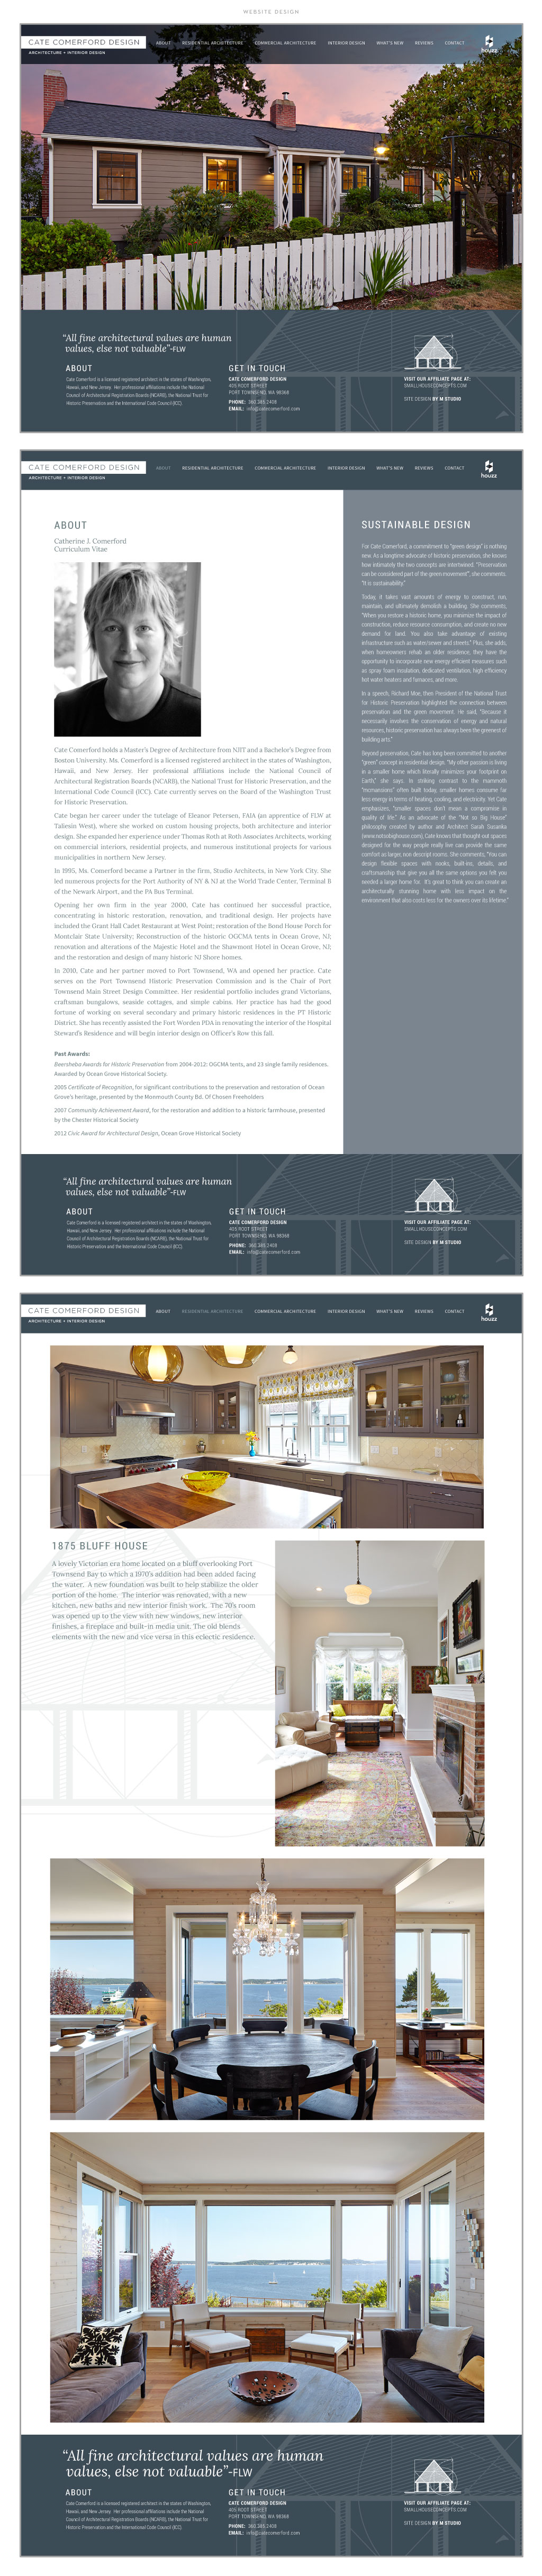 Cate Comerford Architecture web design by M studio